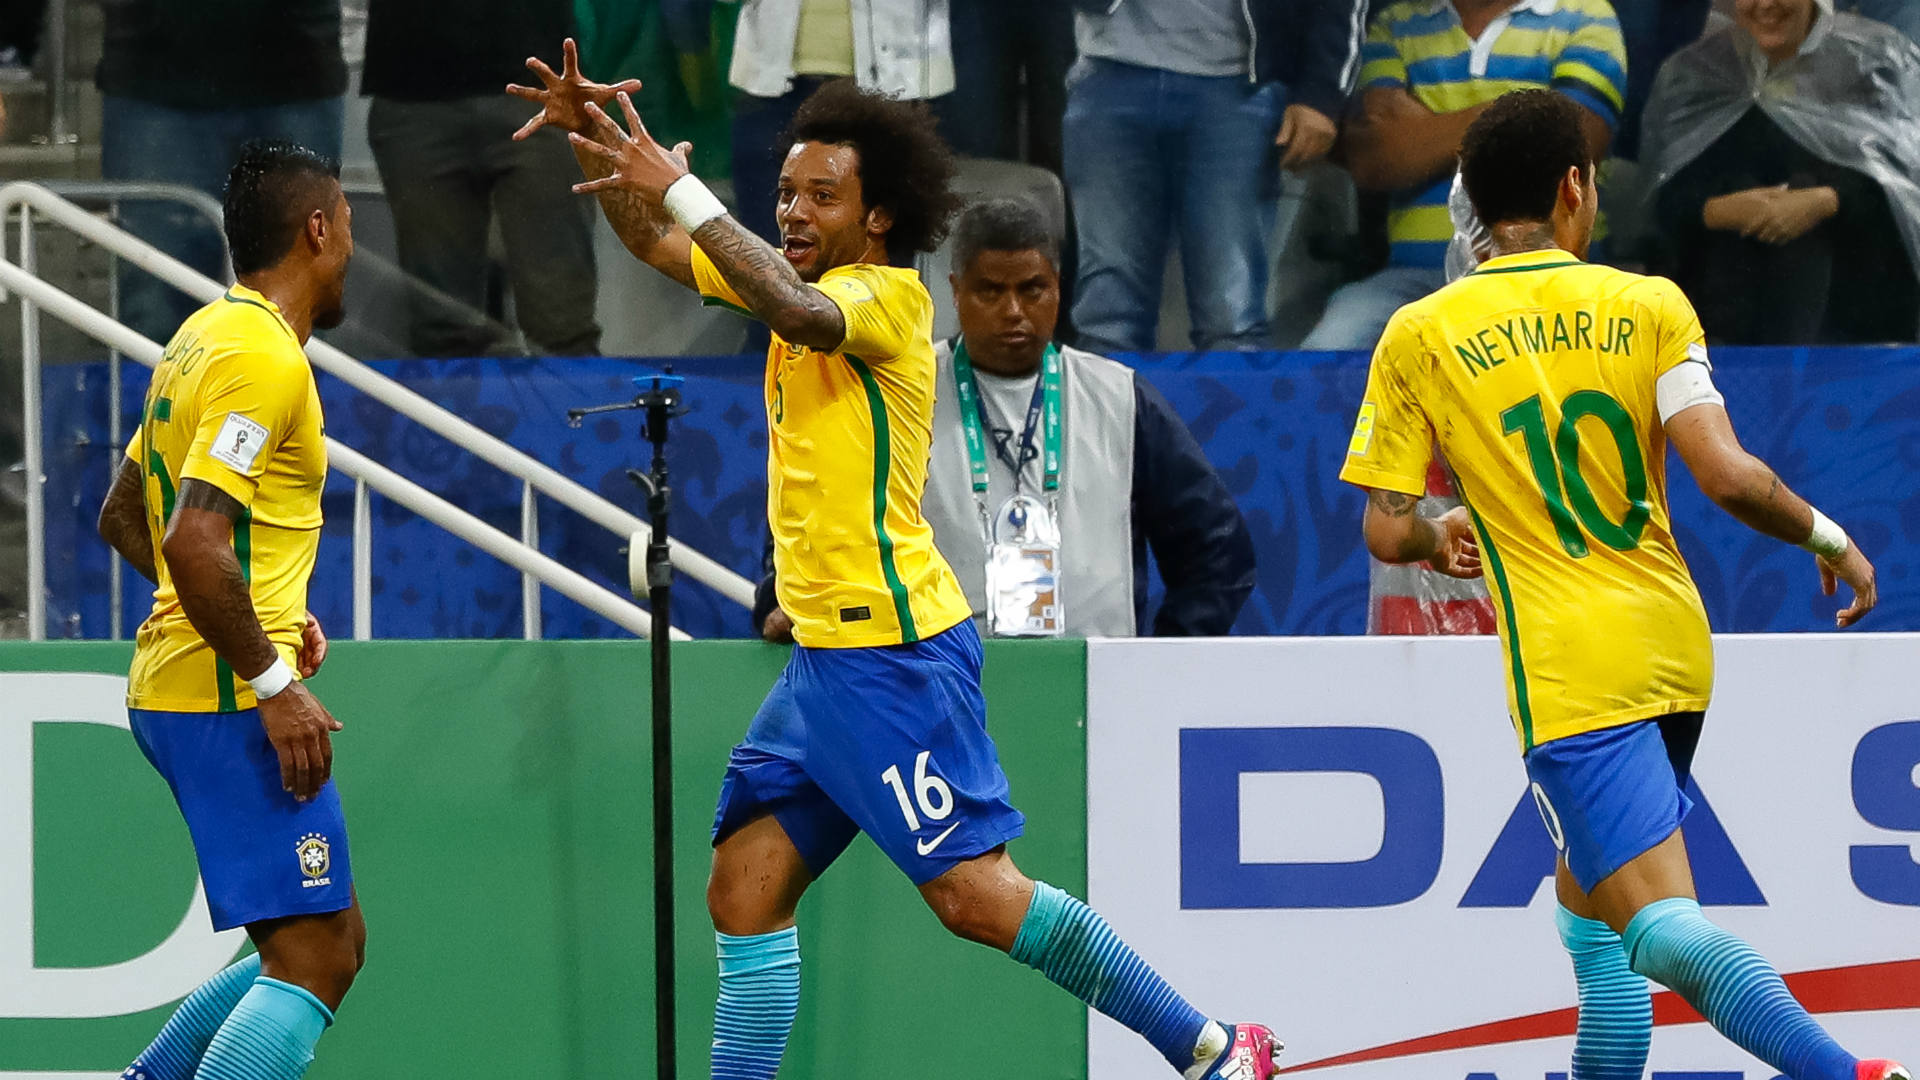 Brazil takes over top spot from Argentina in FIFA rankings